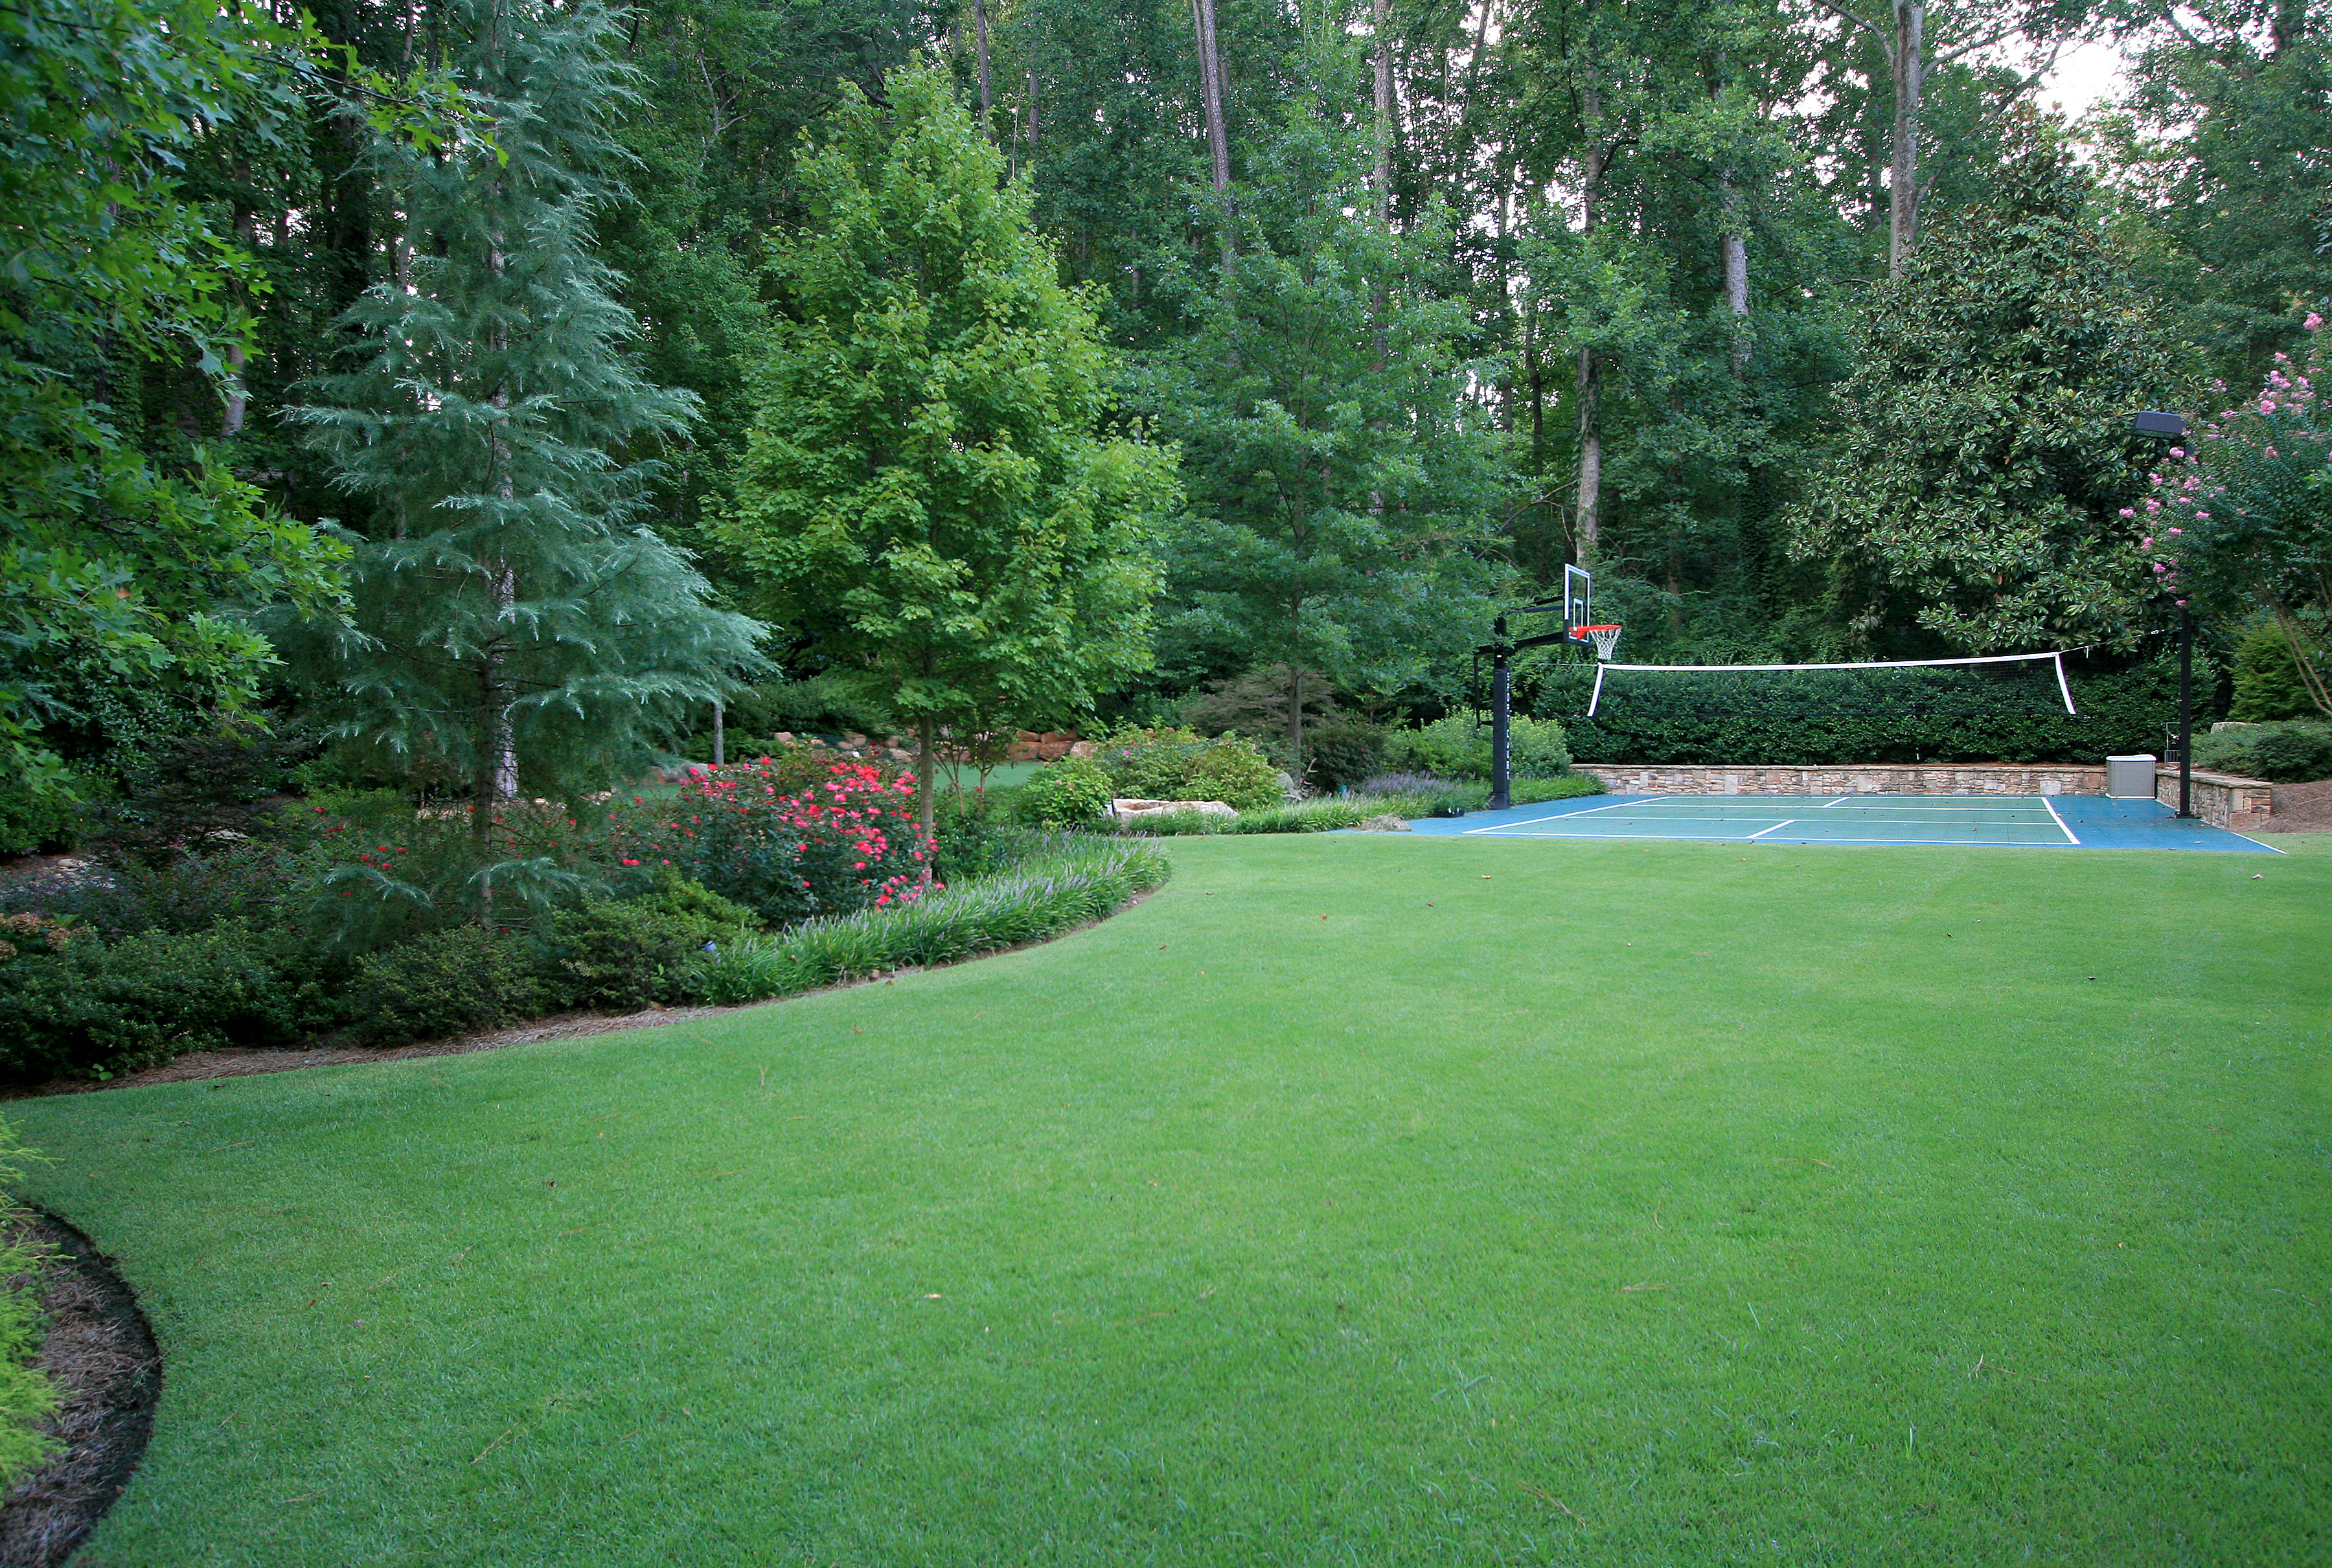 Landscaping Ideas For Cedar Trees : Meyer zoysia lawn with blue evergreen deodar cedar tree and